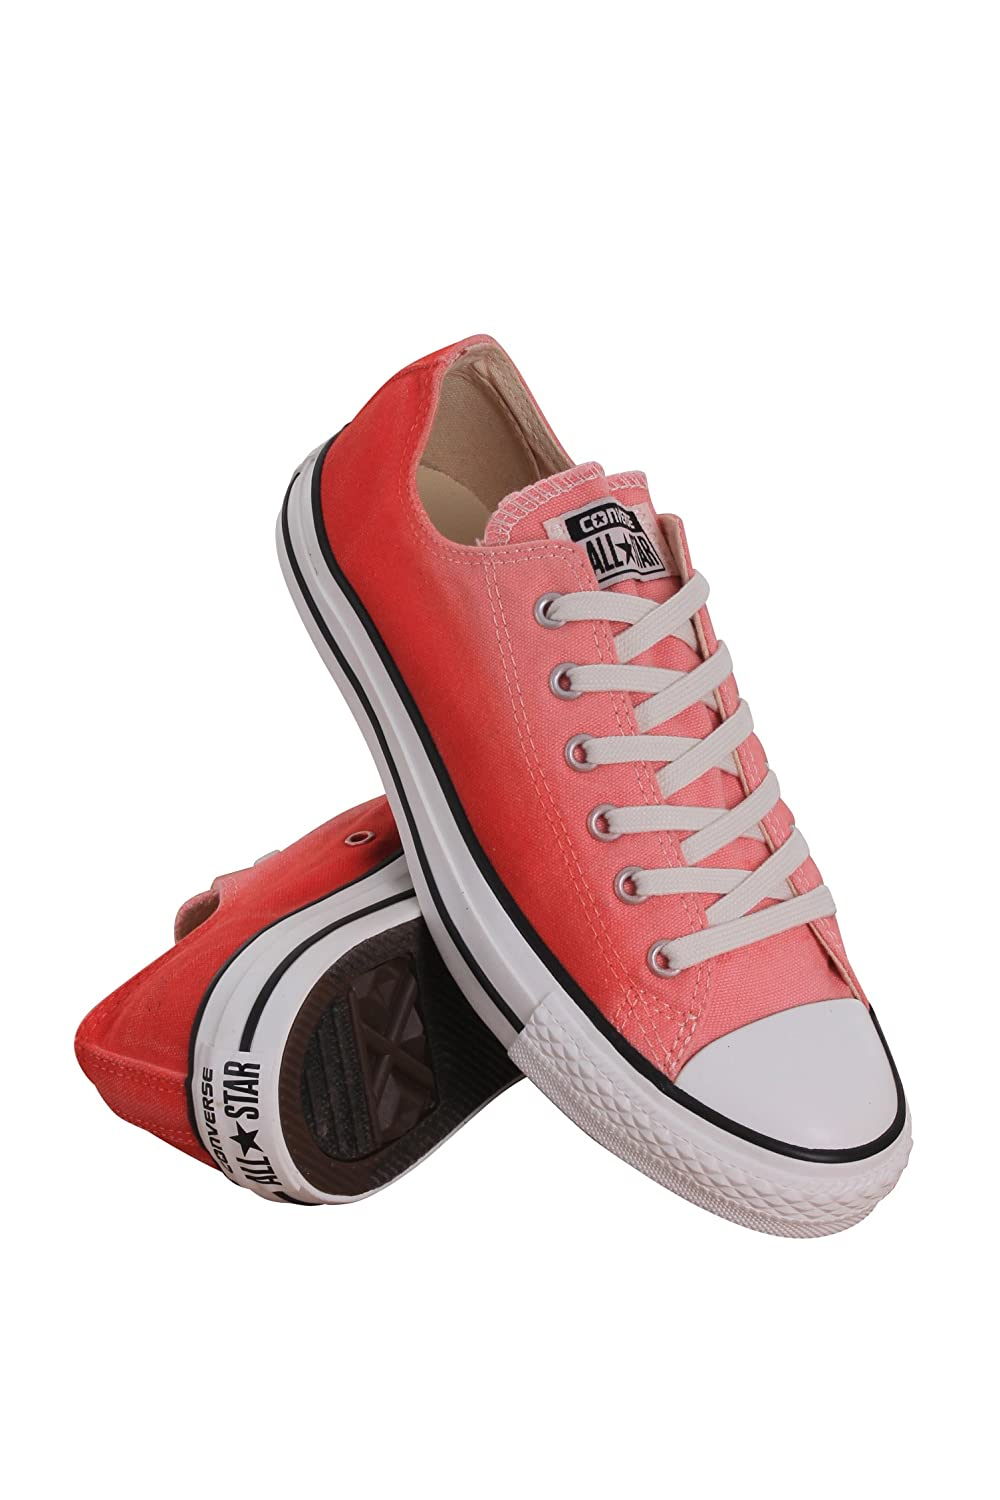 Converse Chuck Taylor All Star Core Ox B011JIEYKI 11 B(M) US Women / 9 D(M) US Men|Pink/Red